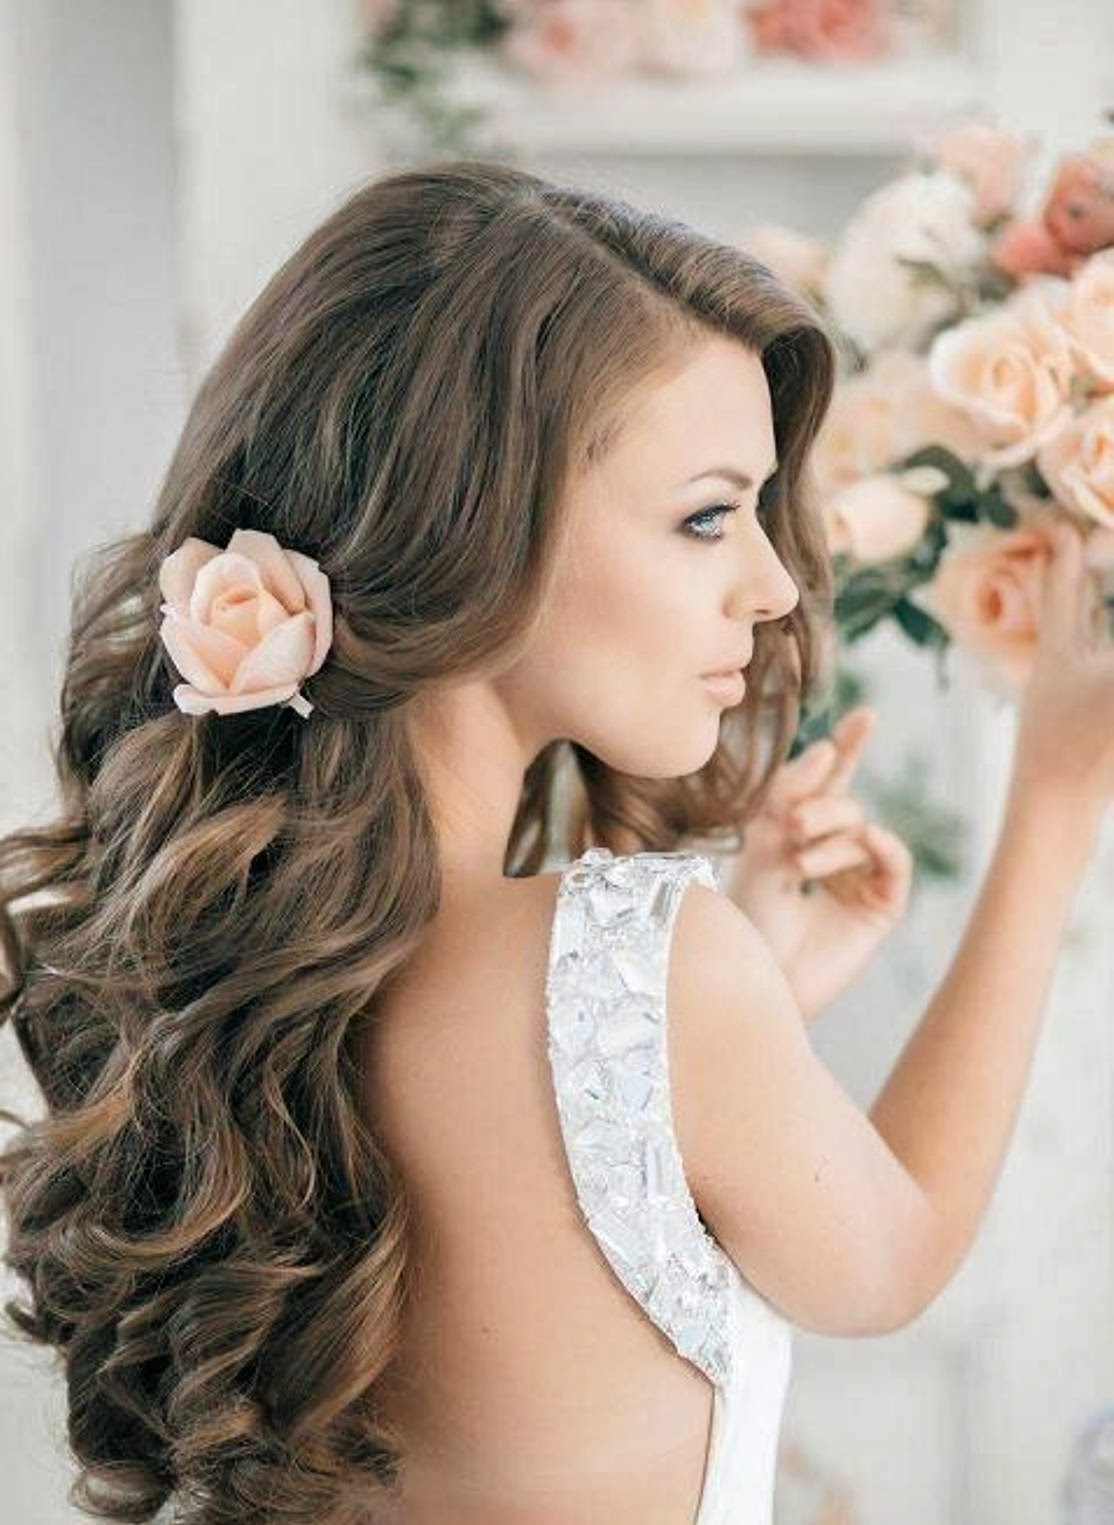 Wedding Hairstyles For Long Hair : hairstyles for long hair wedding : Hair Fashion Style COLOR STYLES ...